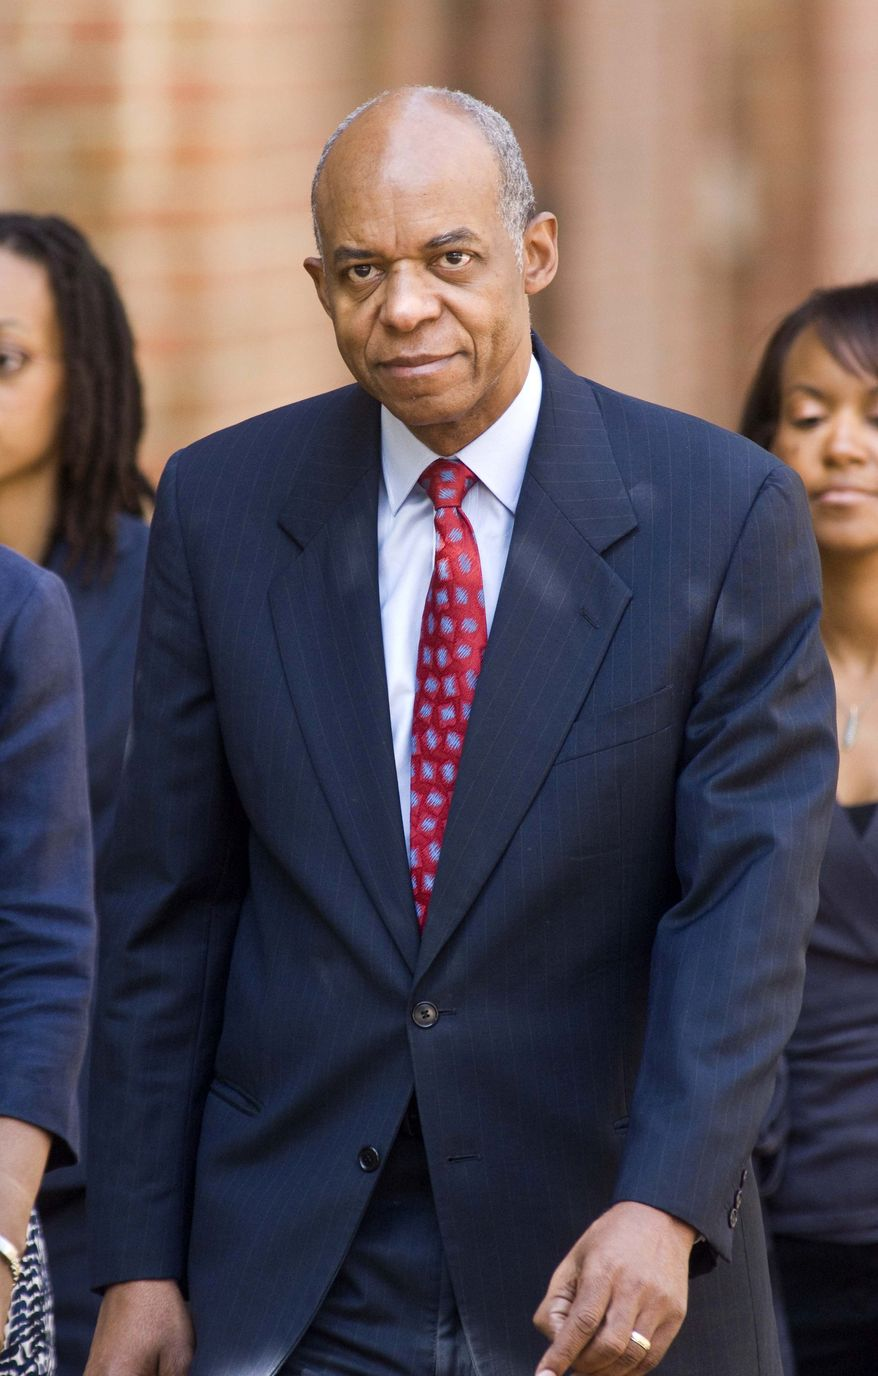 ** FILE ** In this Aug. 5, 2009, file photo, former Louisiana Rep. William Jefferson walks to federal court in Alexandria, Va. The former Louisiana congressman convicted of taking bribes will have to begin serving a 13-year prison sentence within two weeks. (AP Photo/Kevin Wolf, File)